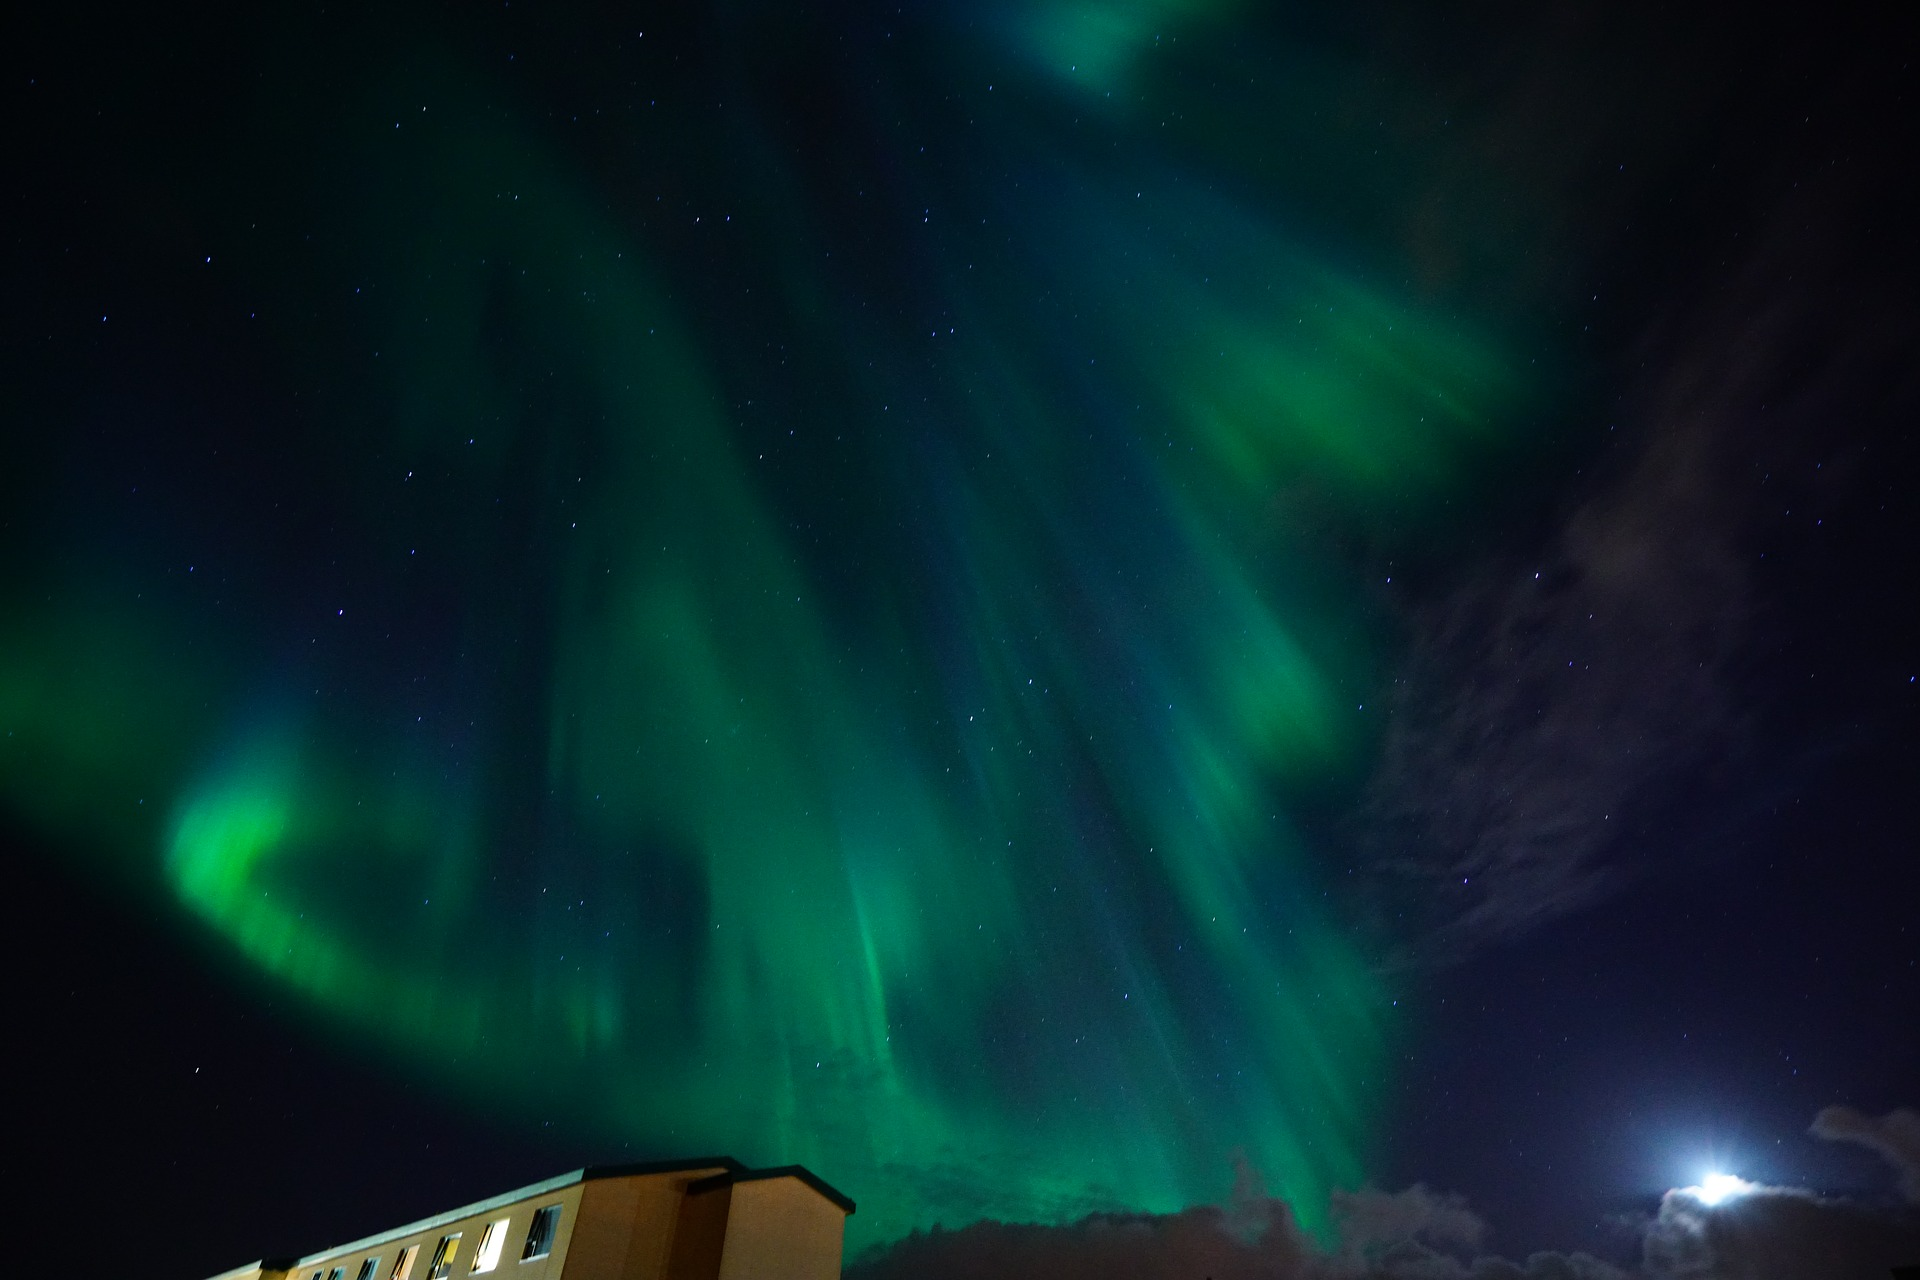 Auroras in Iceland, green and a drak sky